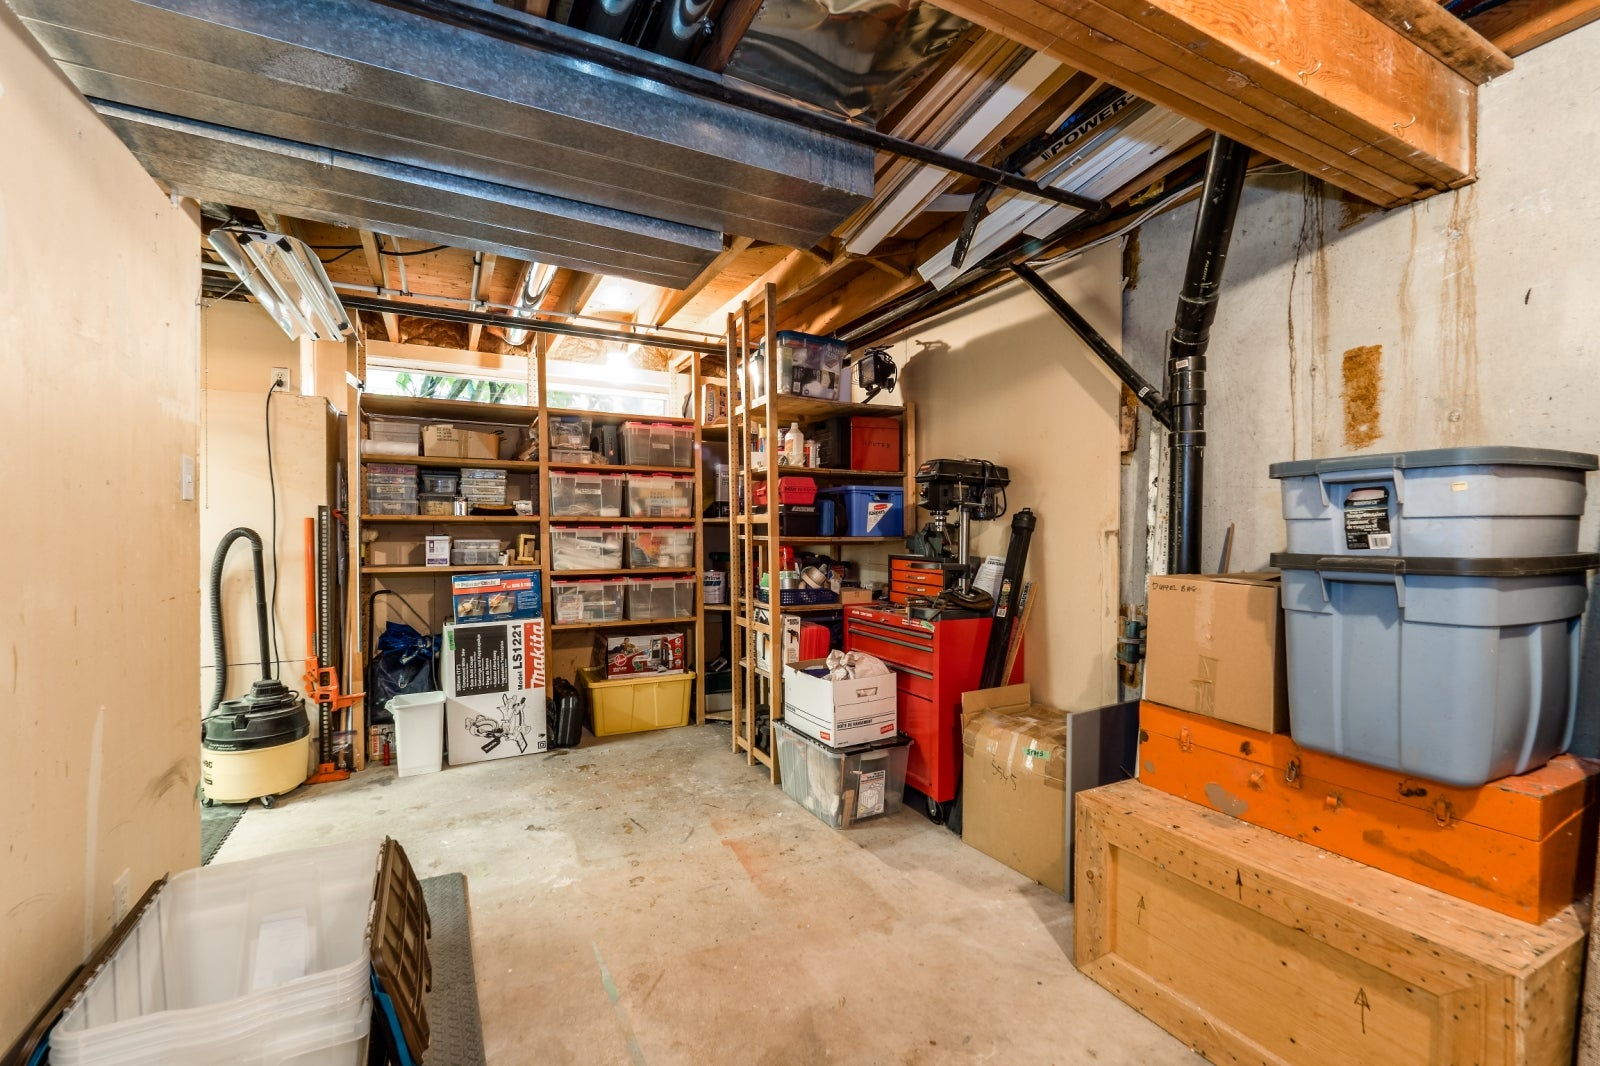 Storage Room/Work Shop